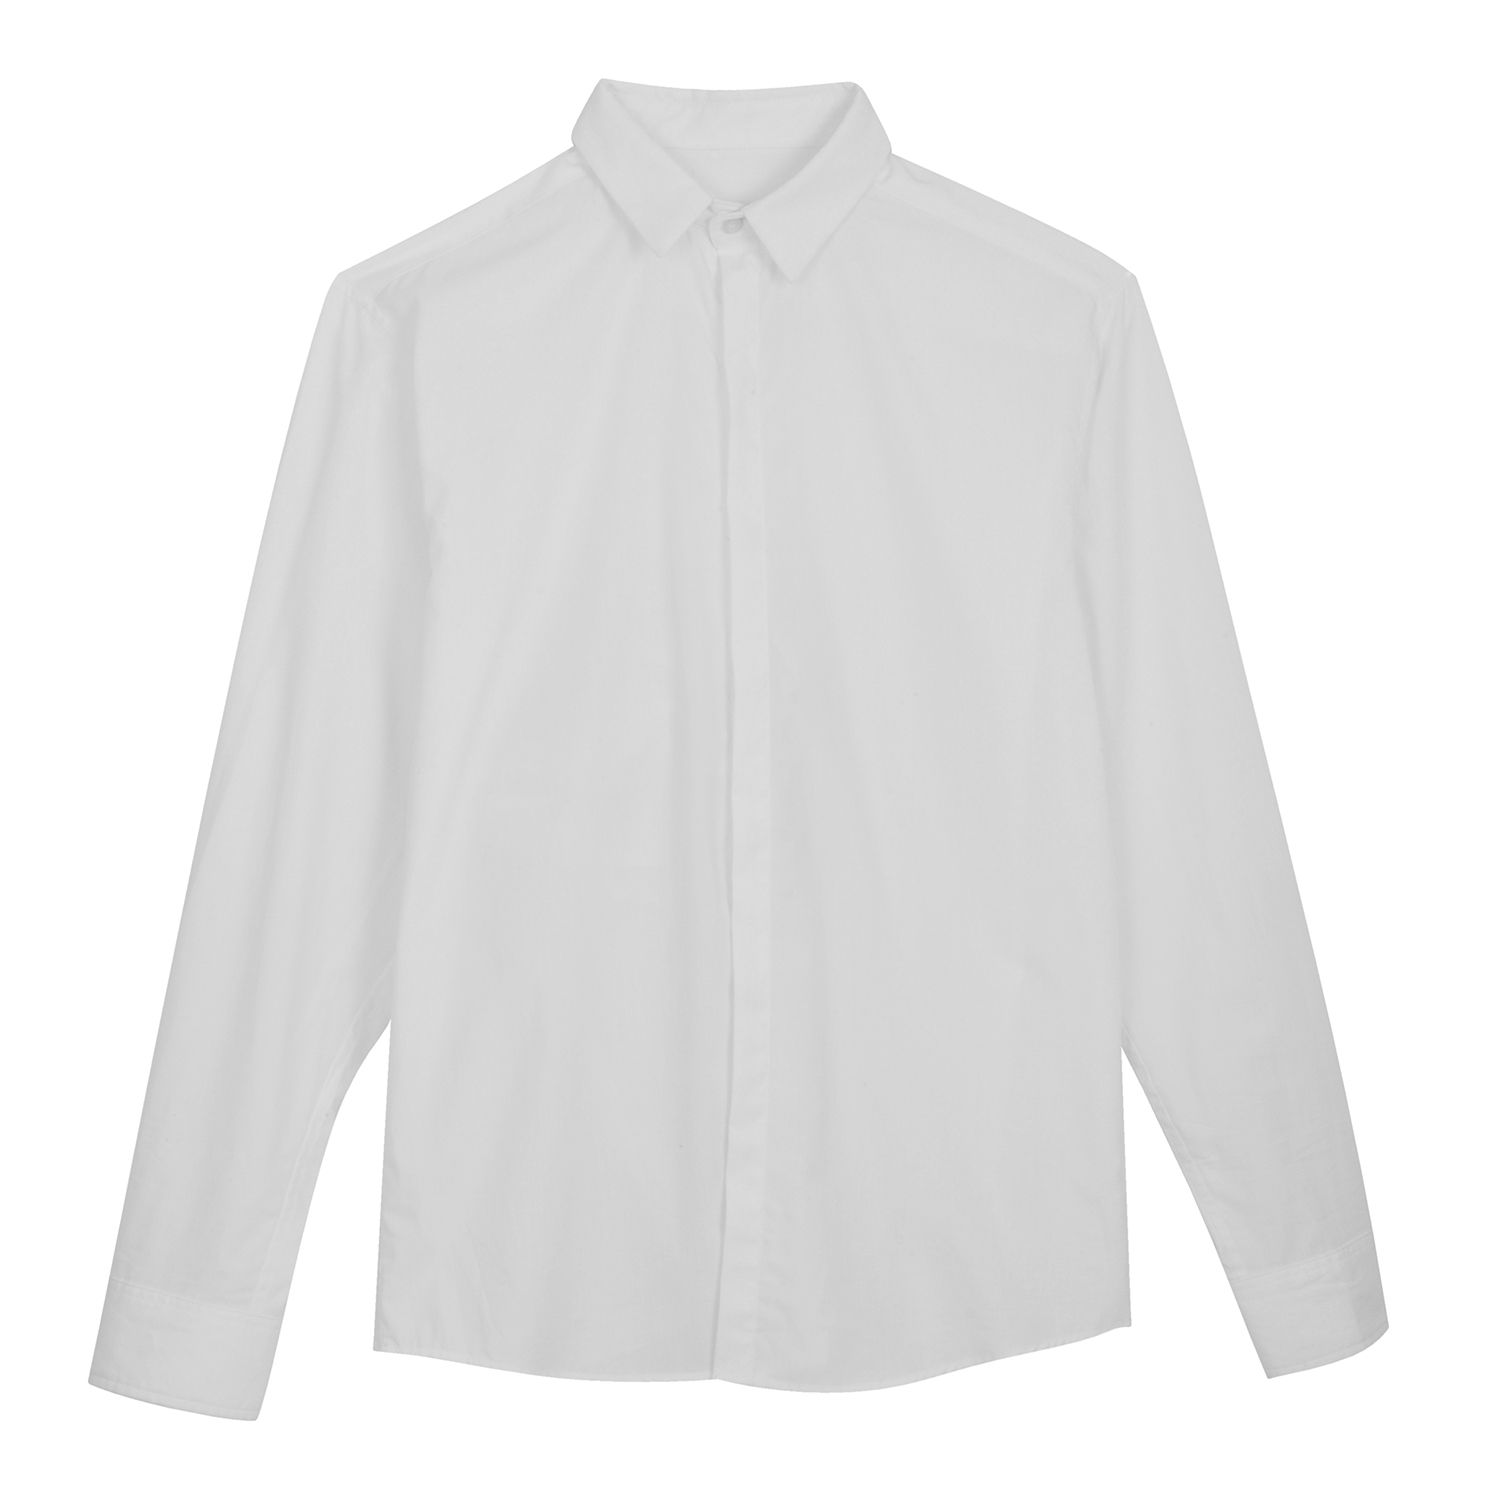 Classic White Shirt | Shirts, Wolves and White shirts